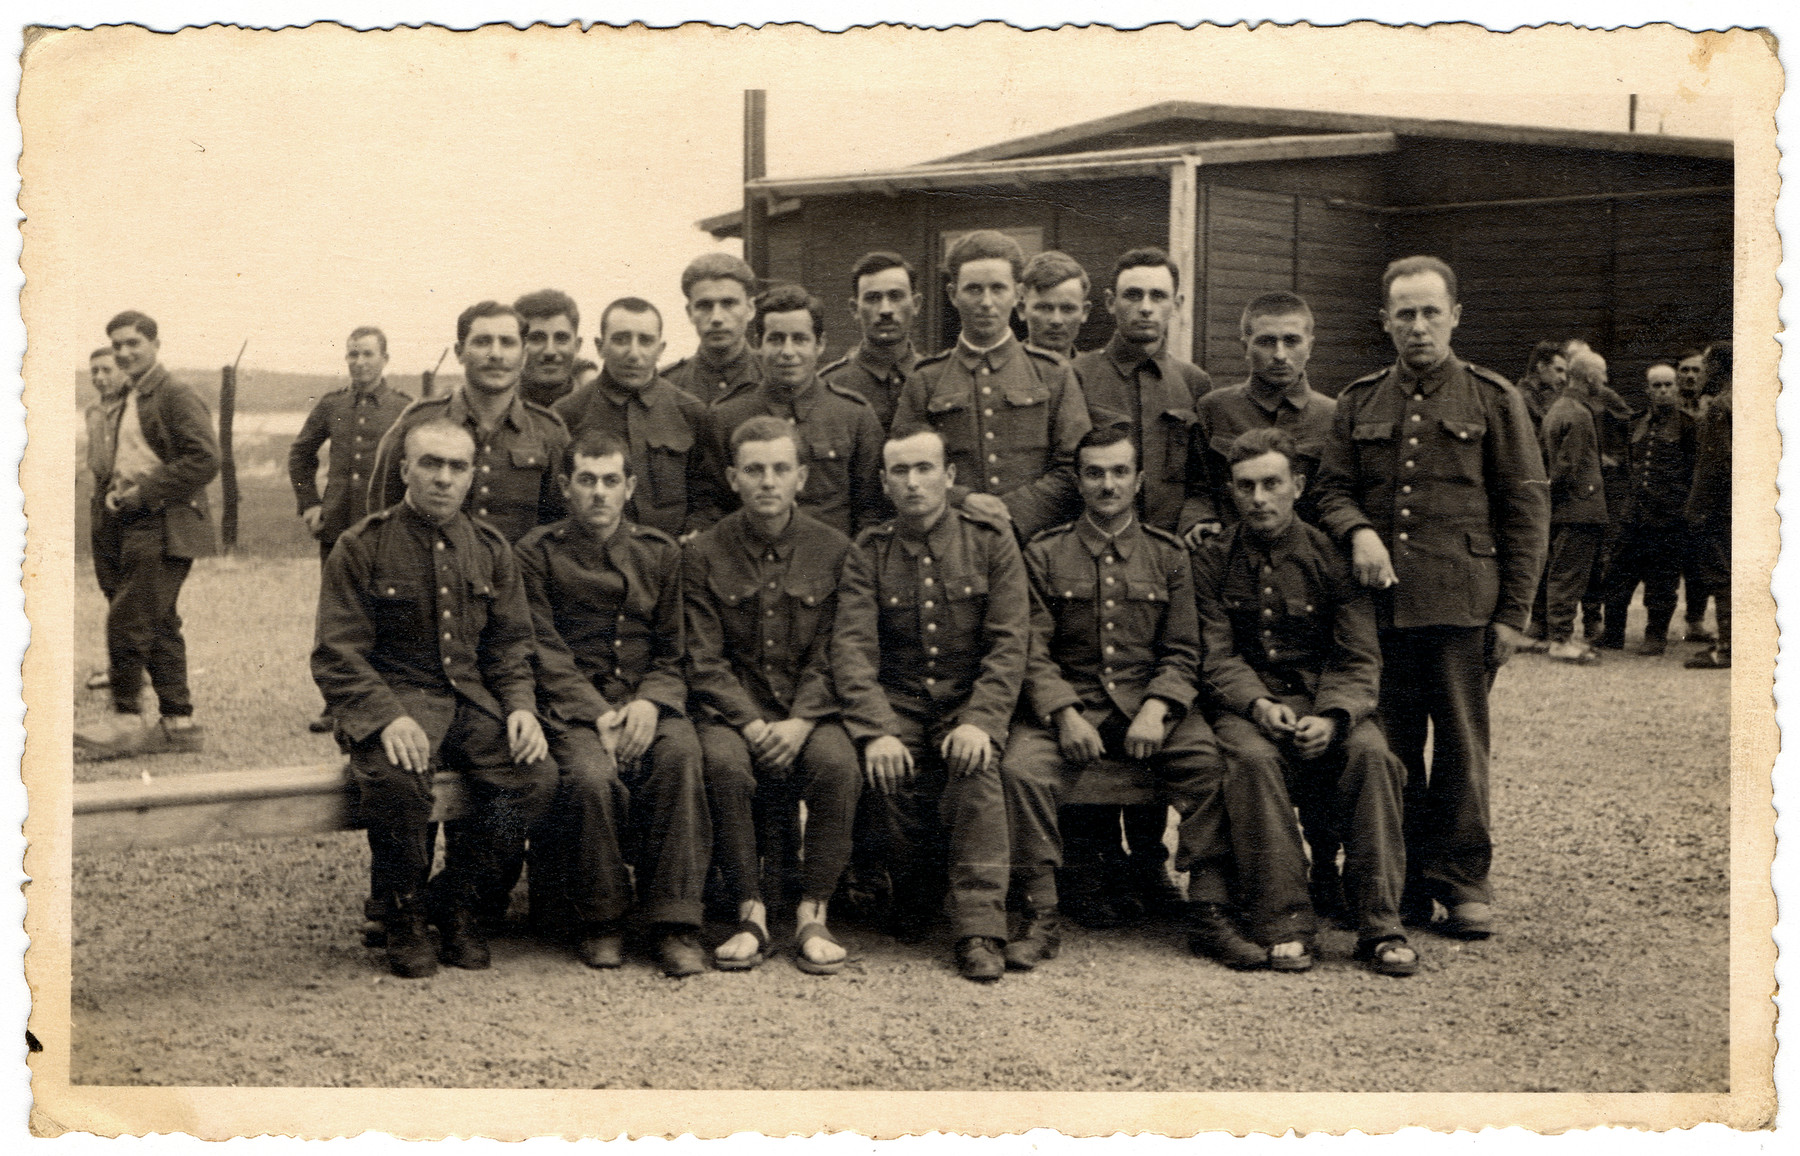 Group portrait of prisoners in the Elsterhorst prisoner of war camp, Stalag IV-A.  Jan Szelubski is pictured standing, fifth from the left. Rio Francis is pictured sitting, first on right.